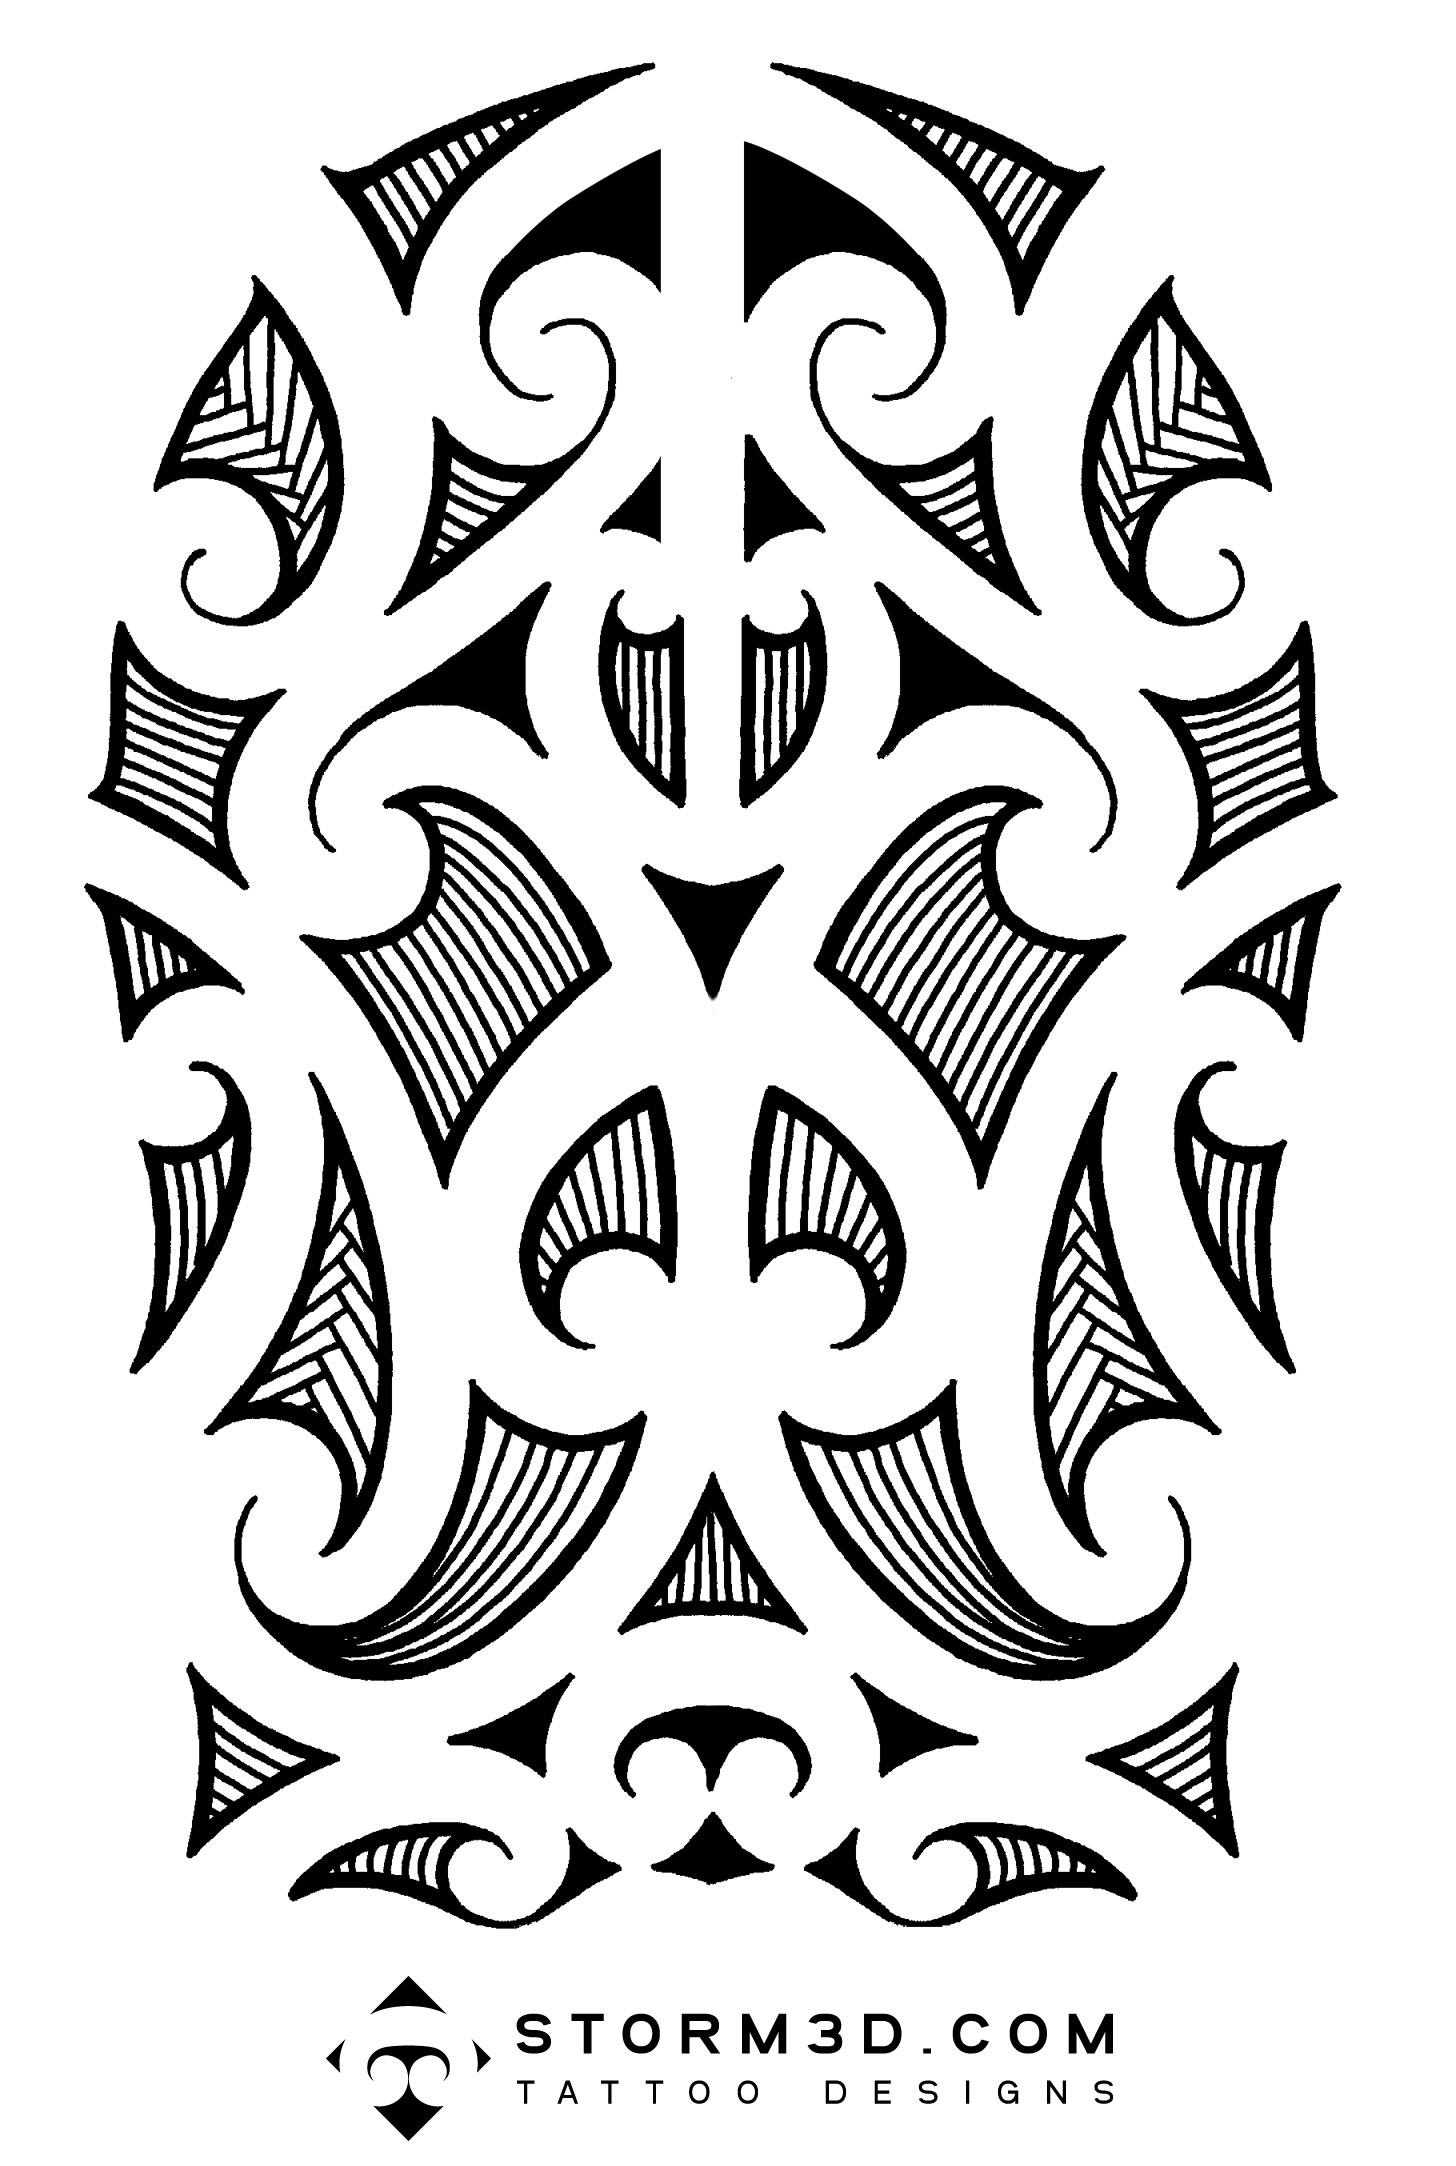 Download a full-size maori tattoo example for free.